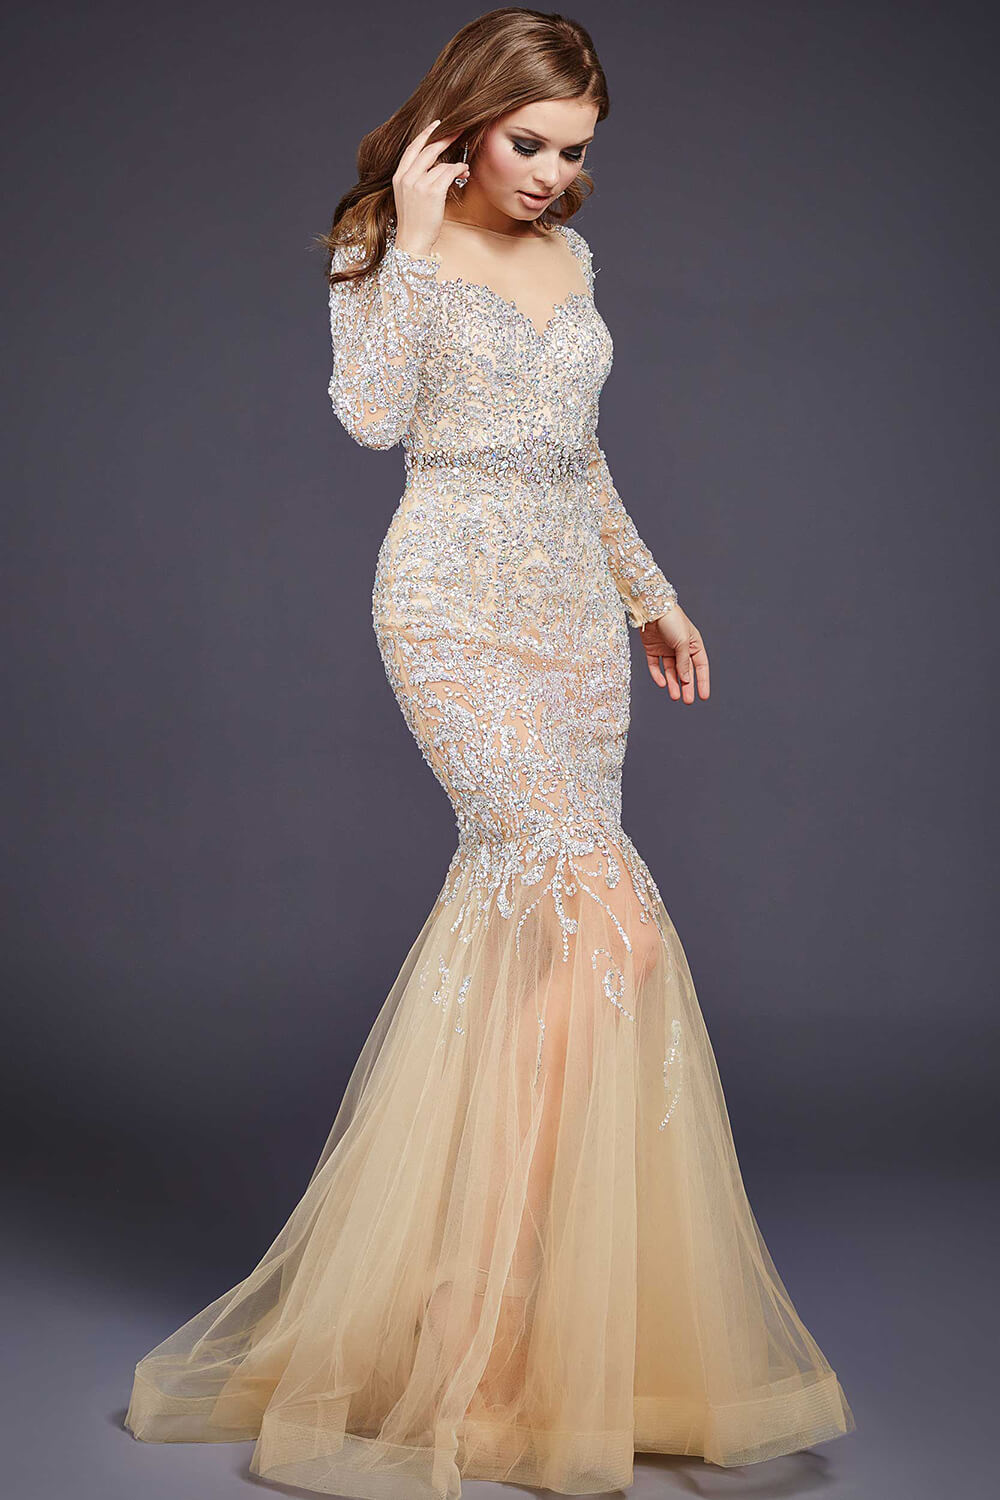 Ravishing And Beautiful Evening Gowns Ohh My My